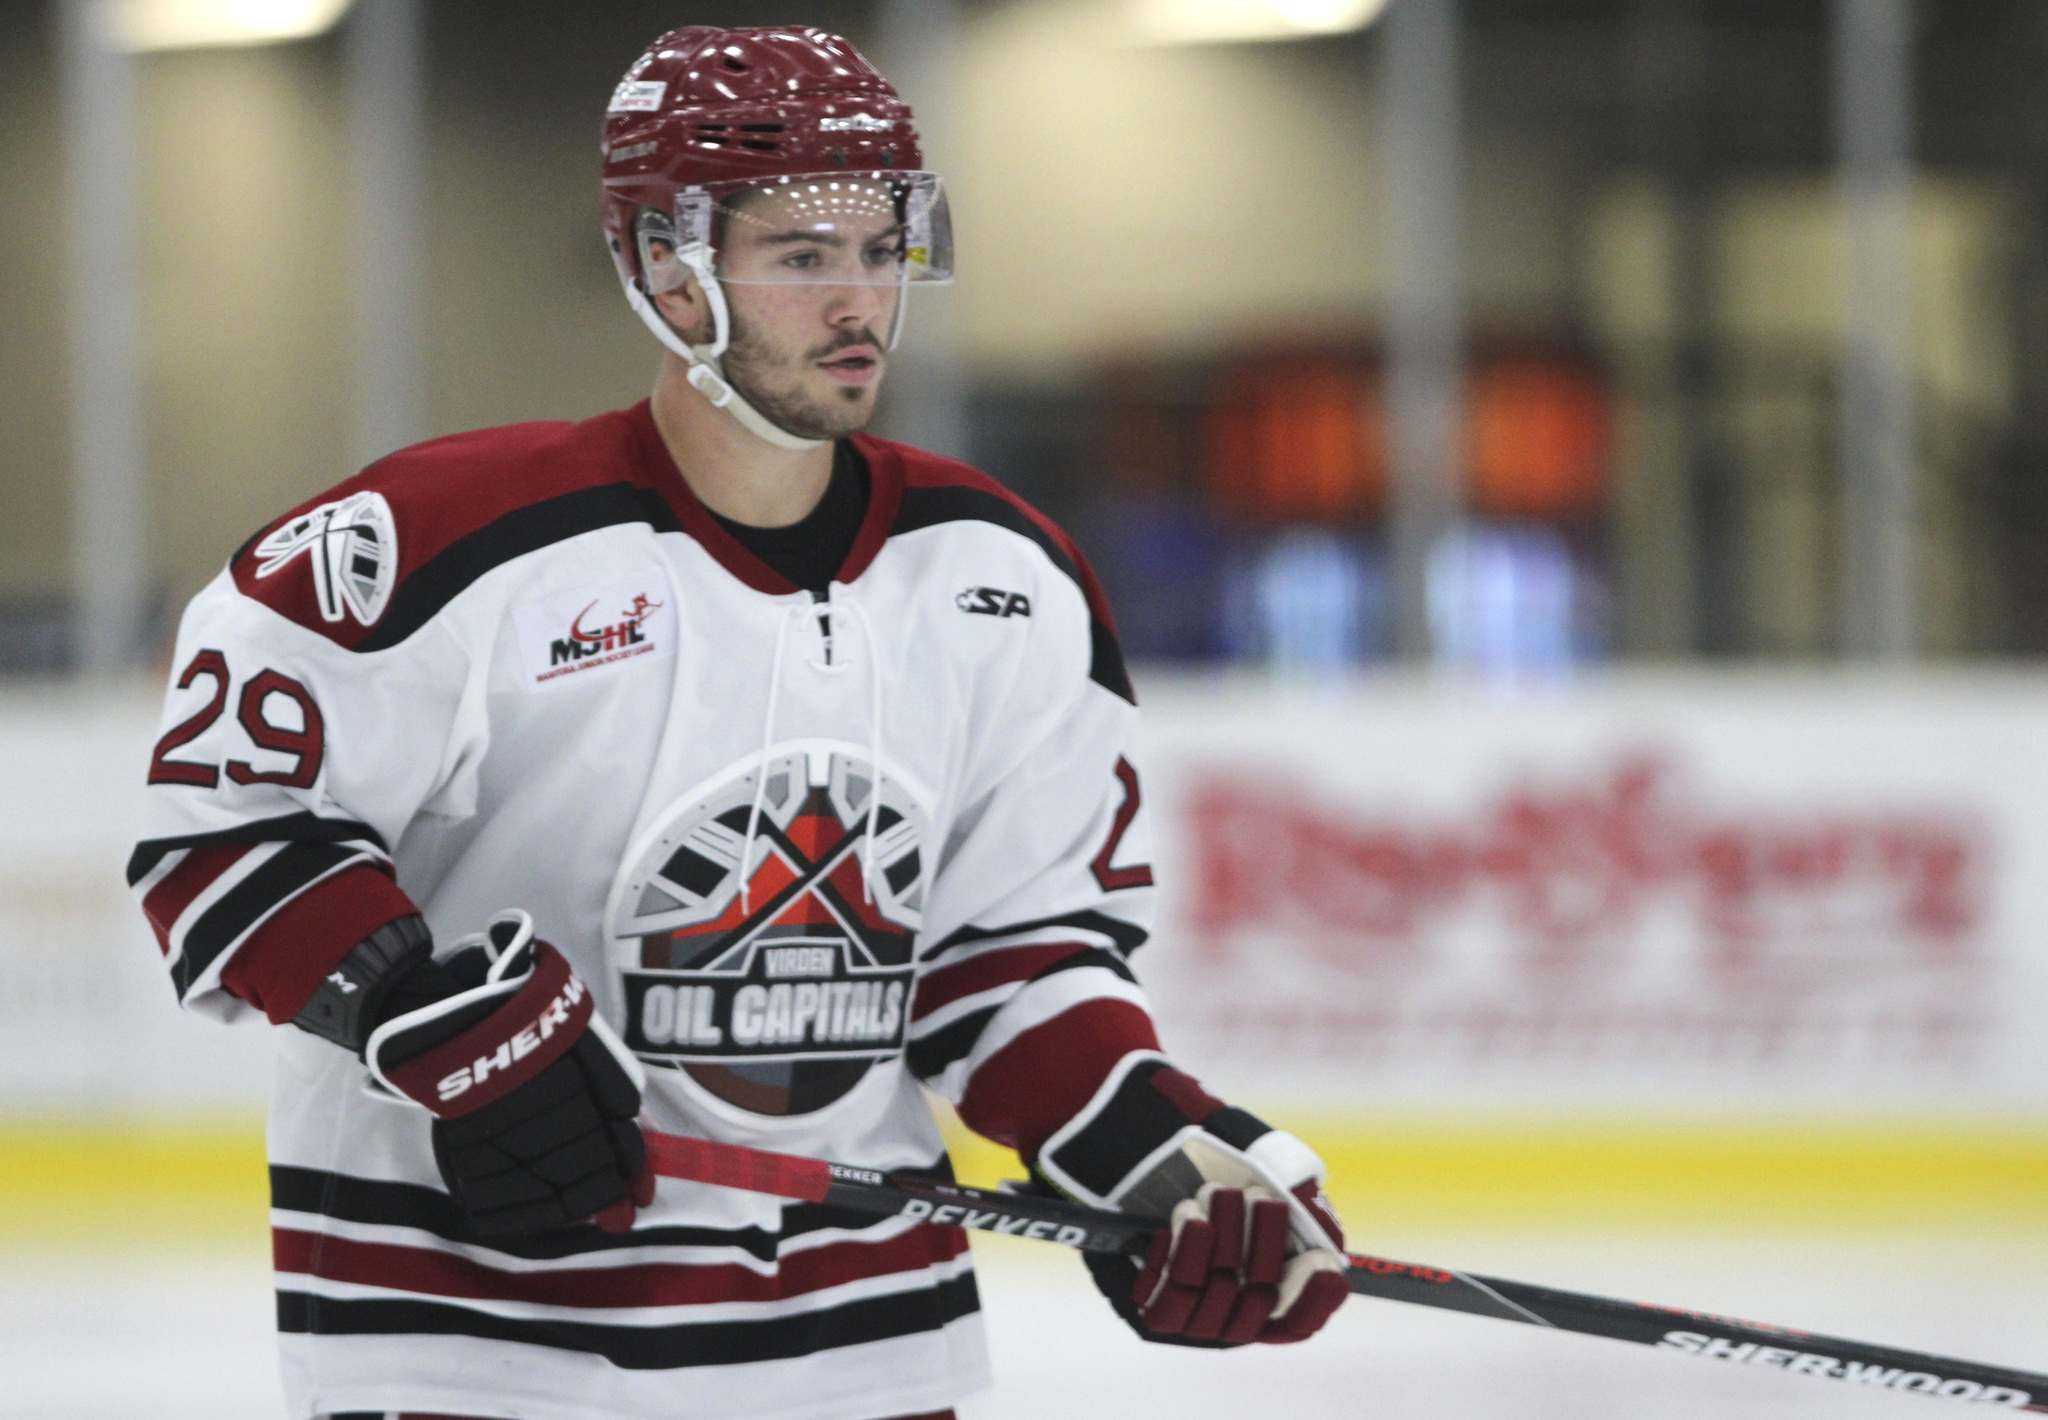 Virden centre Kolten Kanaski scored eight times in a six-game series with the Selkirk Steelers as the Oil Capitals advanced to an MJHL semifinal series against the top-seeded Portage Terriers. (Perry Bergson / The Brandon Sun files)</p>